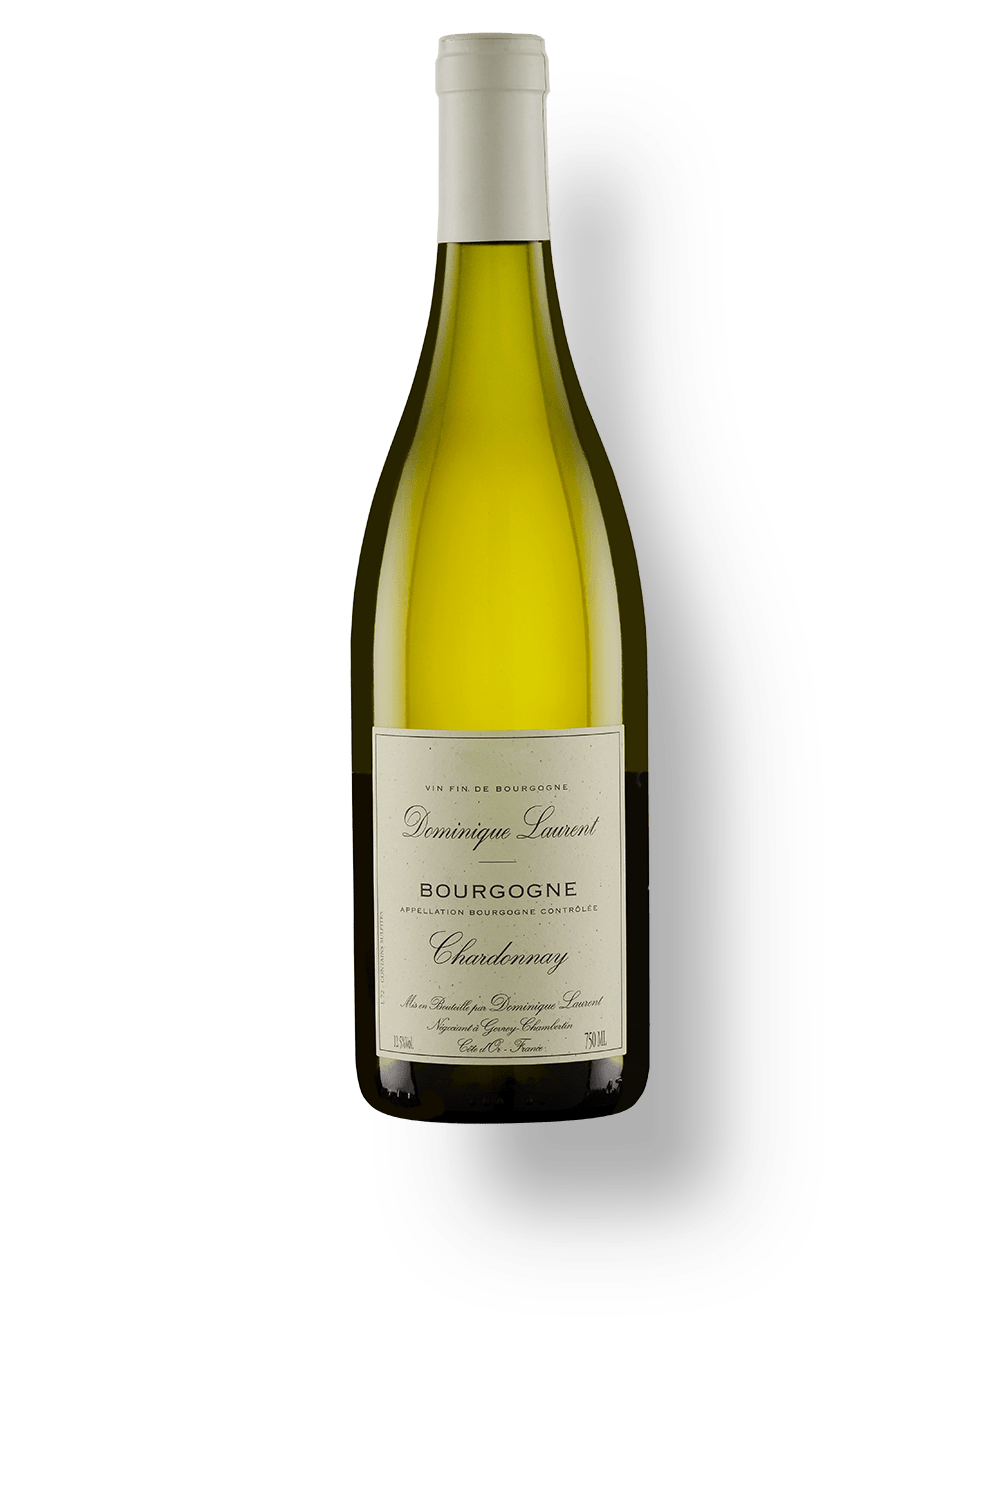 Vinho_Branco_Bourgogne_Chardonnay_2014_Dominique_Laurent_Bourgogne_Chardonnay_023264